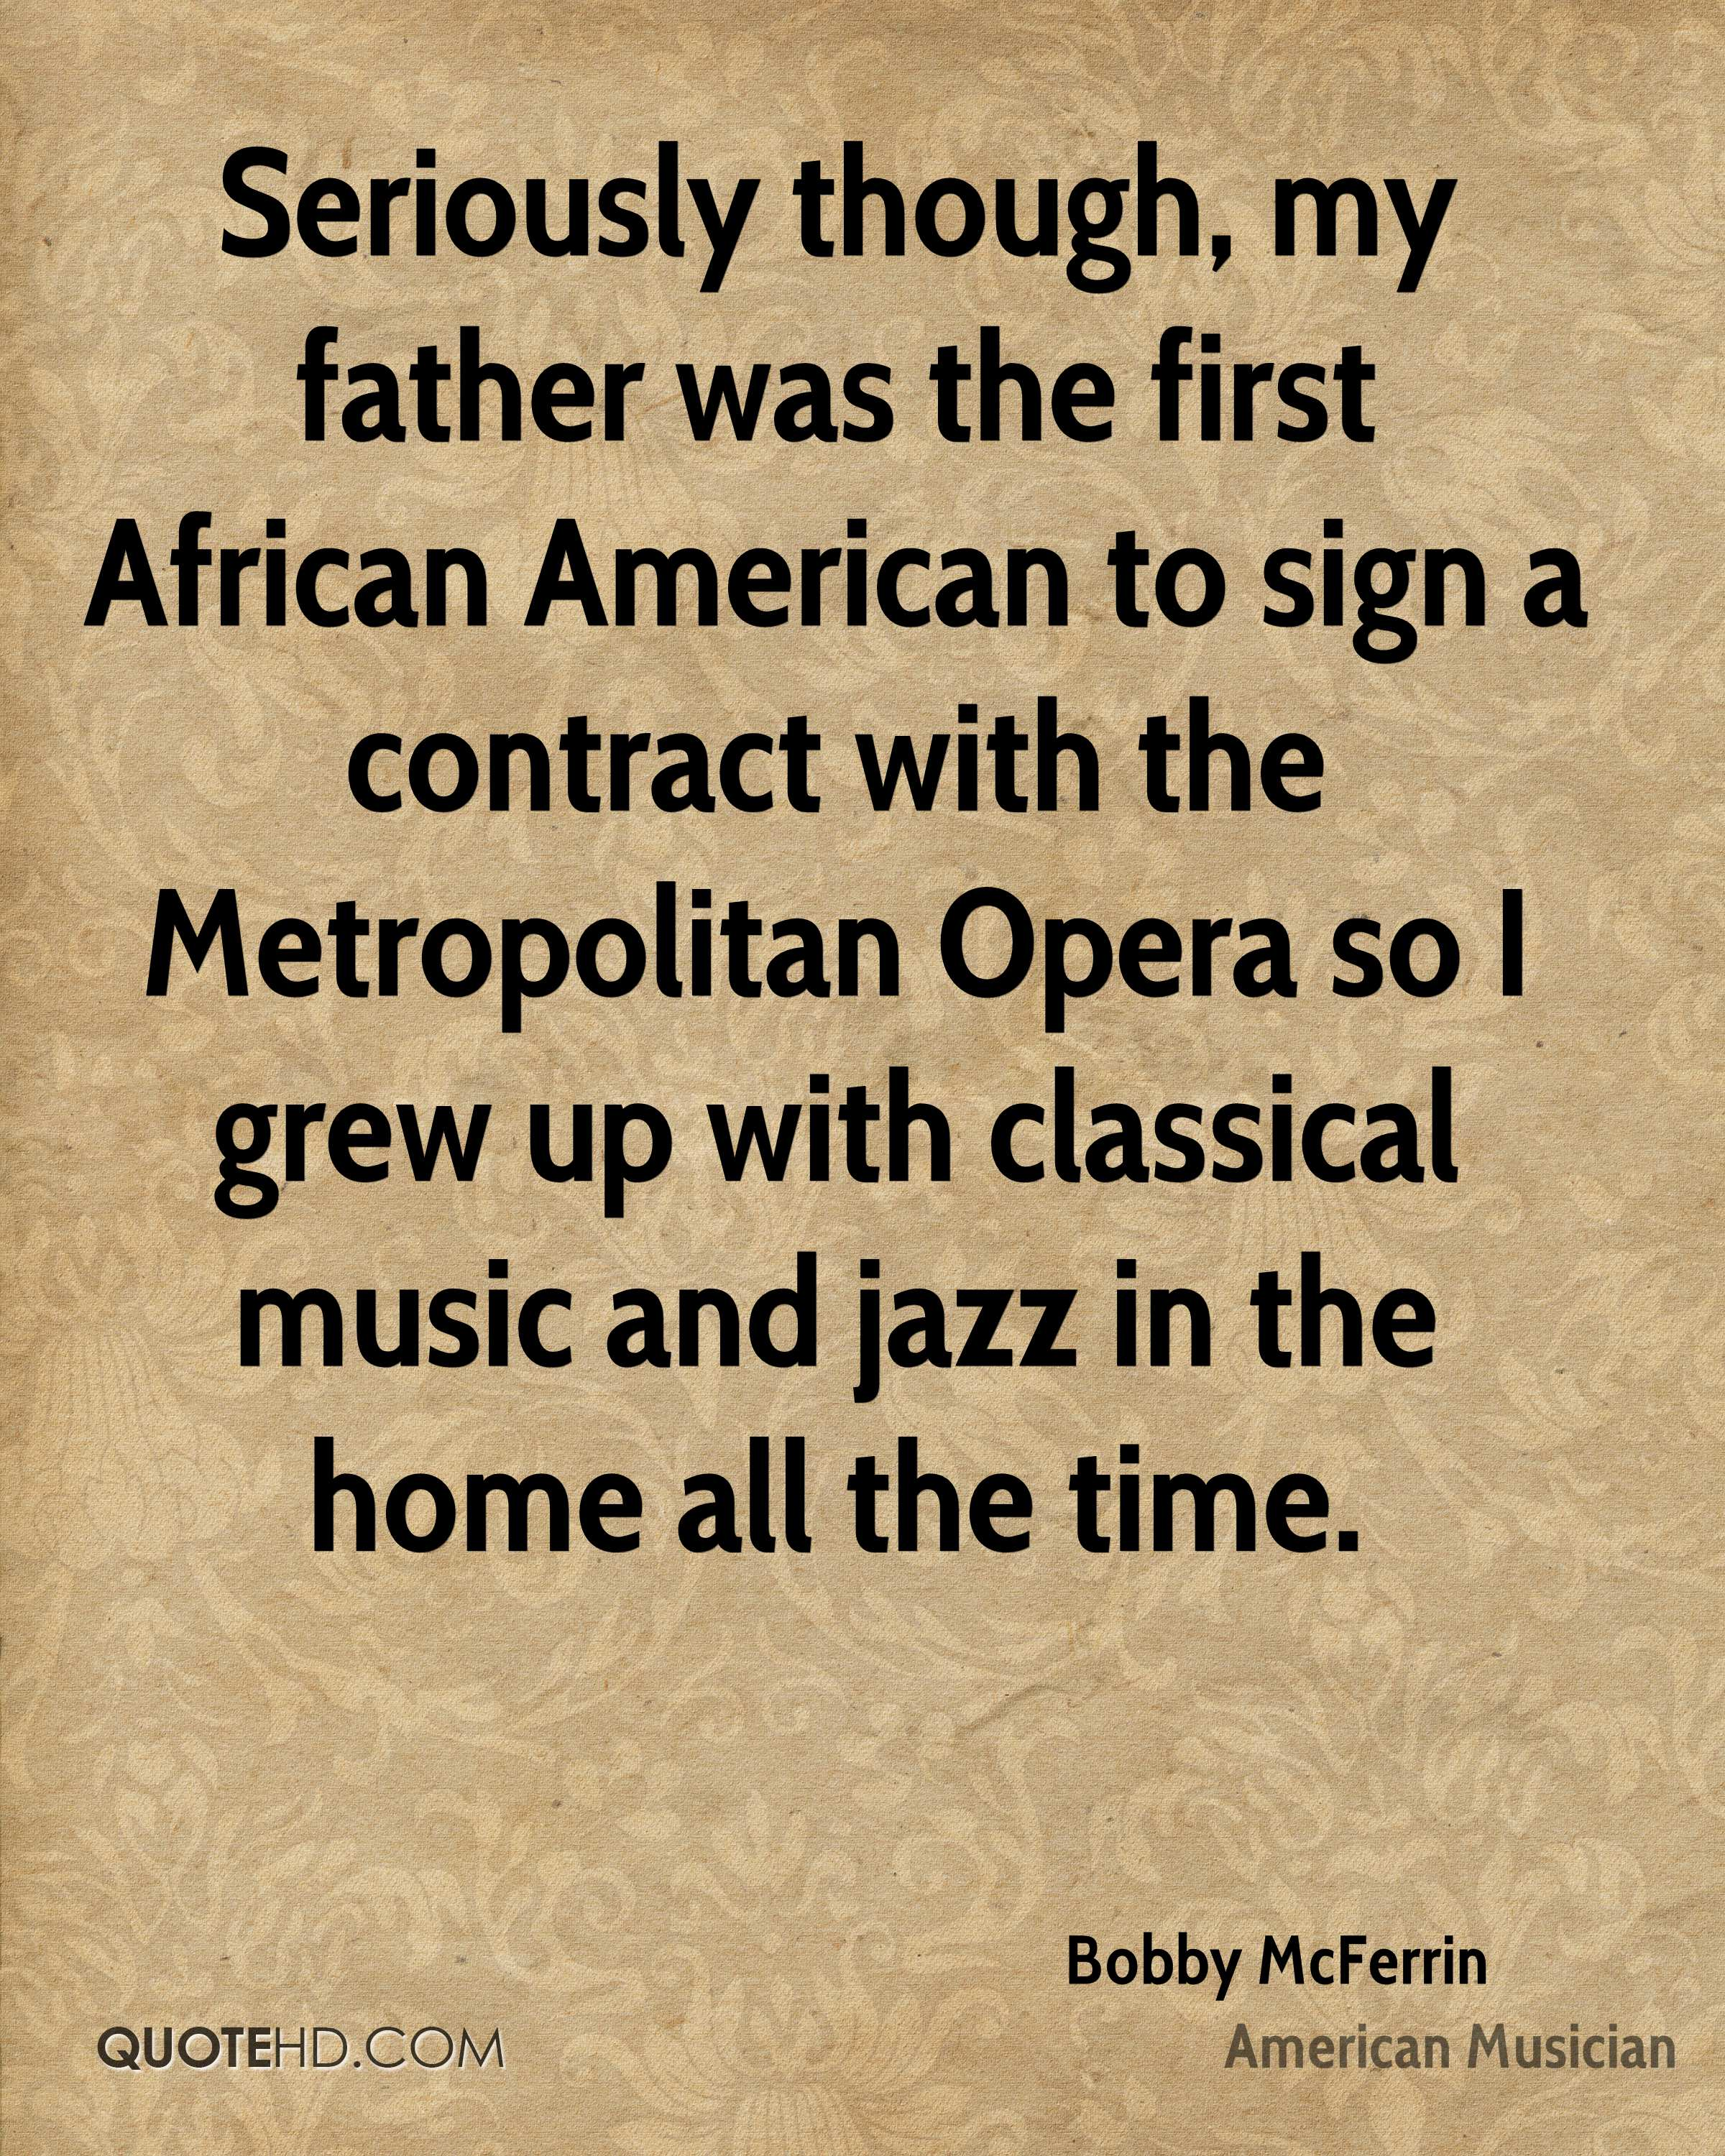 Seriously though, my father was the first African American to sign a contract with the Metropolitan Opera so I grew up with classical music and jazz in the home all the time.